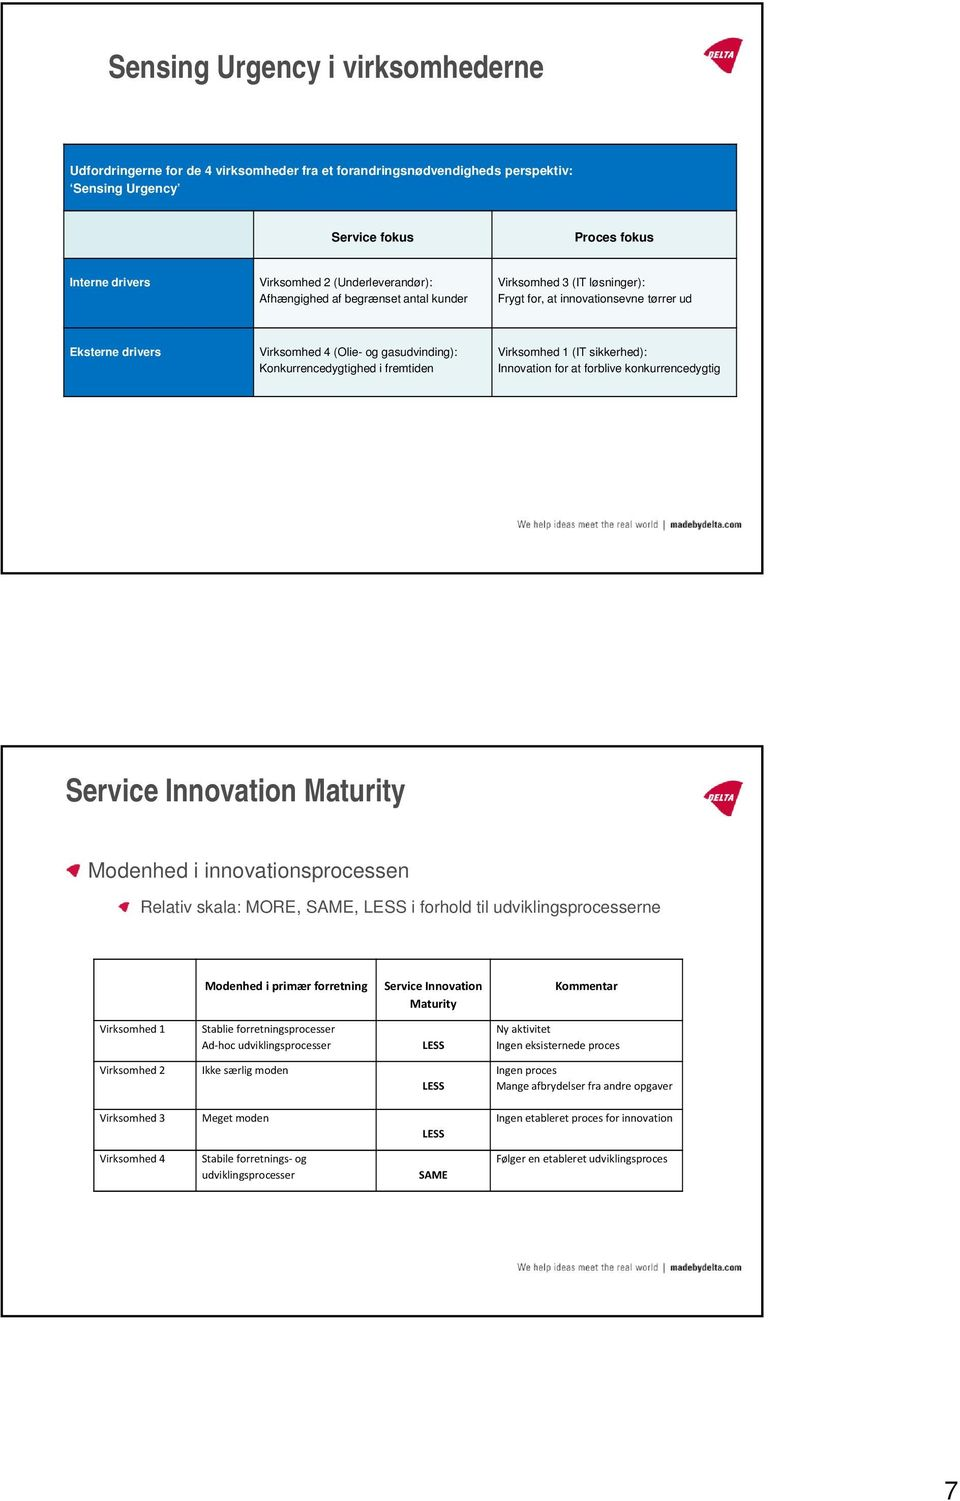 Konkurrencedygtighed i fremtiden Virksomhed 1 (IT sikkerhed): Innovation for at forblive konkurrencedygtig Service Innovation Maturity Modenhed i innovationsprocessen Relativ skala: MORE, SAME, LESS